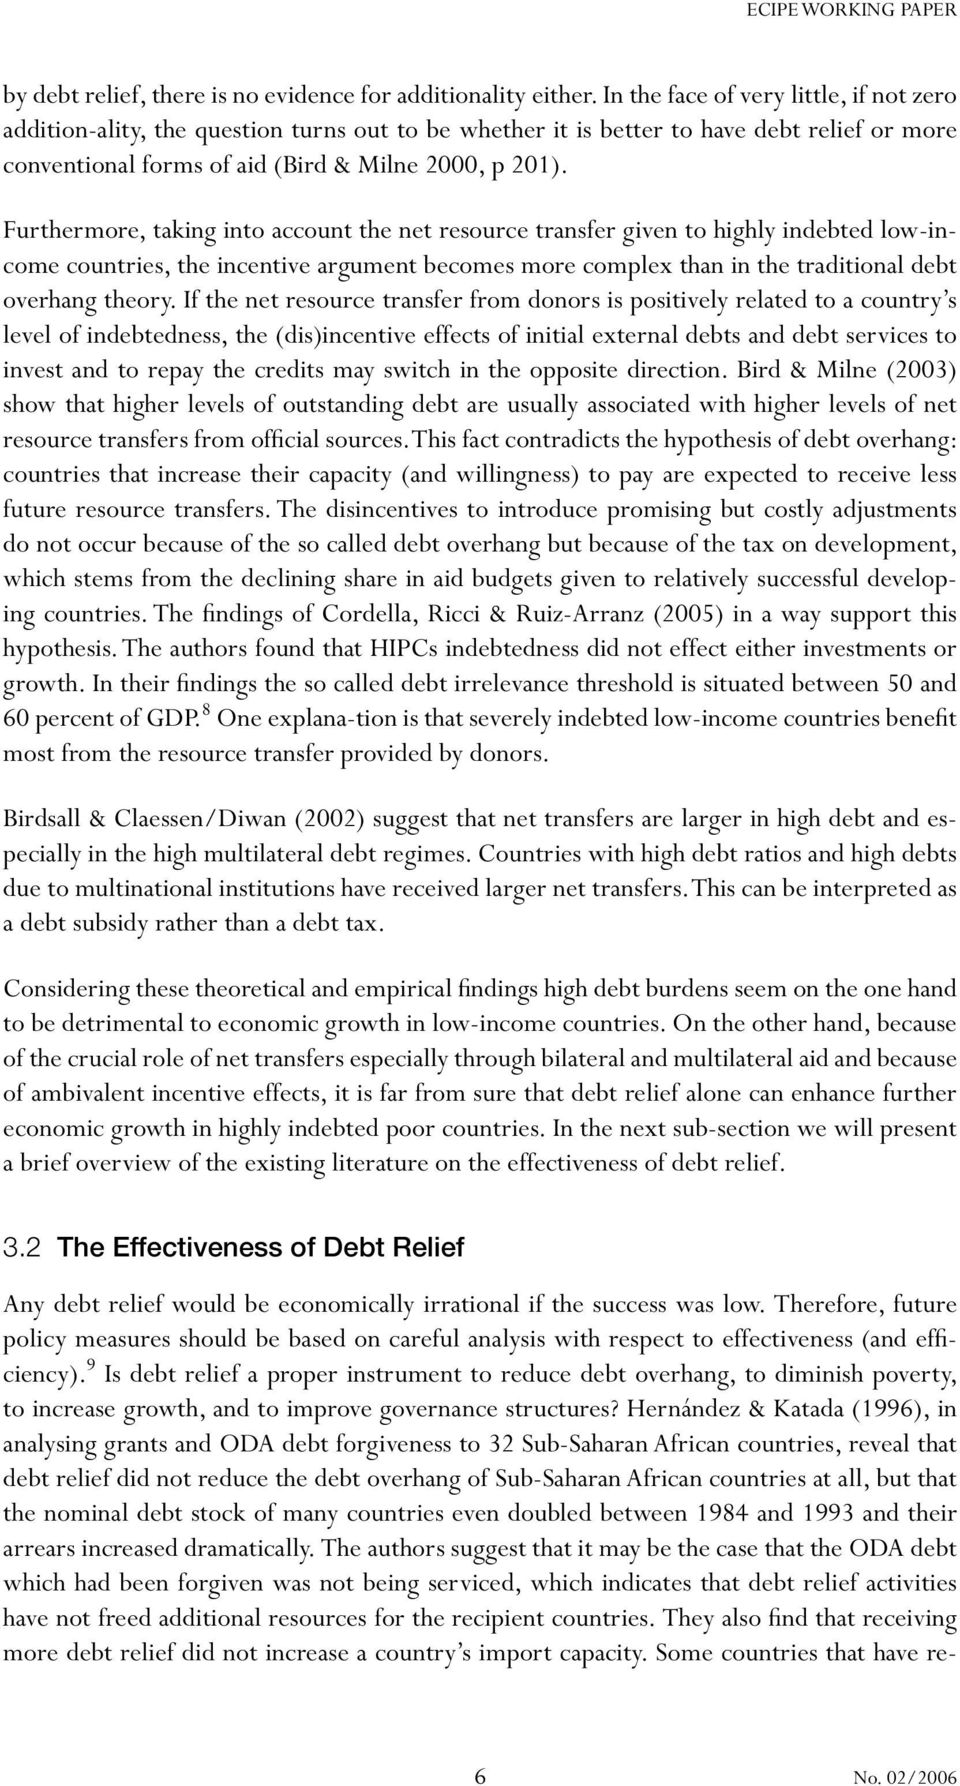 Furthermore, taking into account the net resource transfer given to highly indebted low-income countries, the incentive argument becomes more complex than in the traditional debt overhang theory.